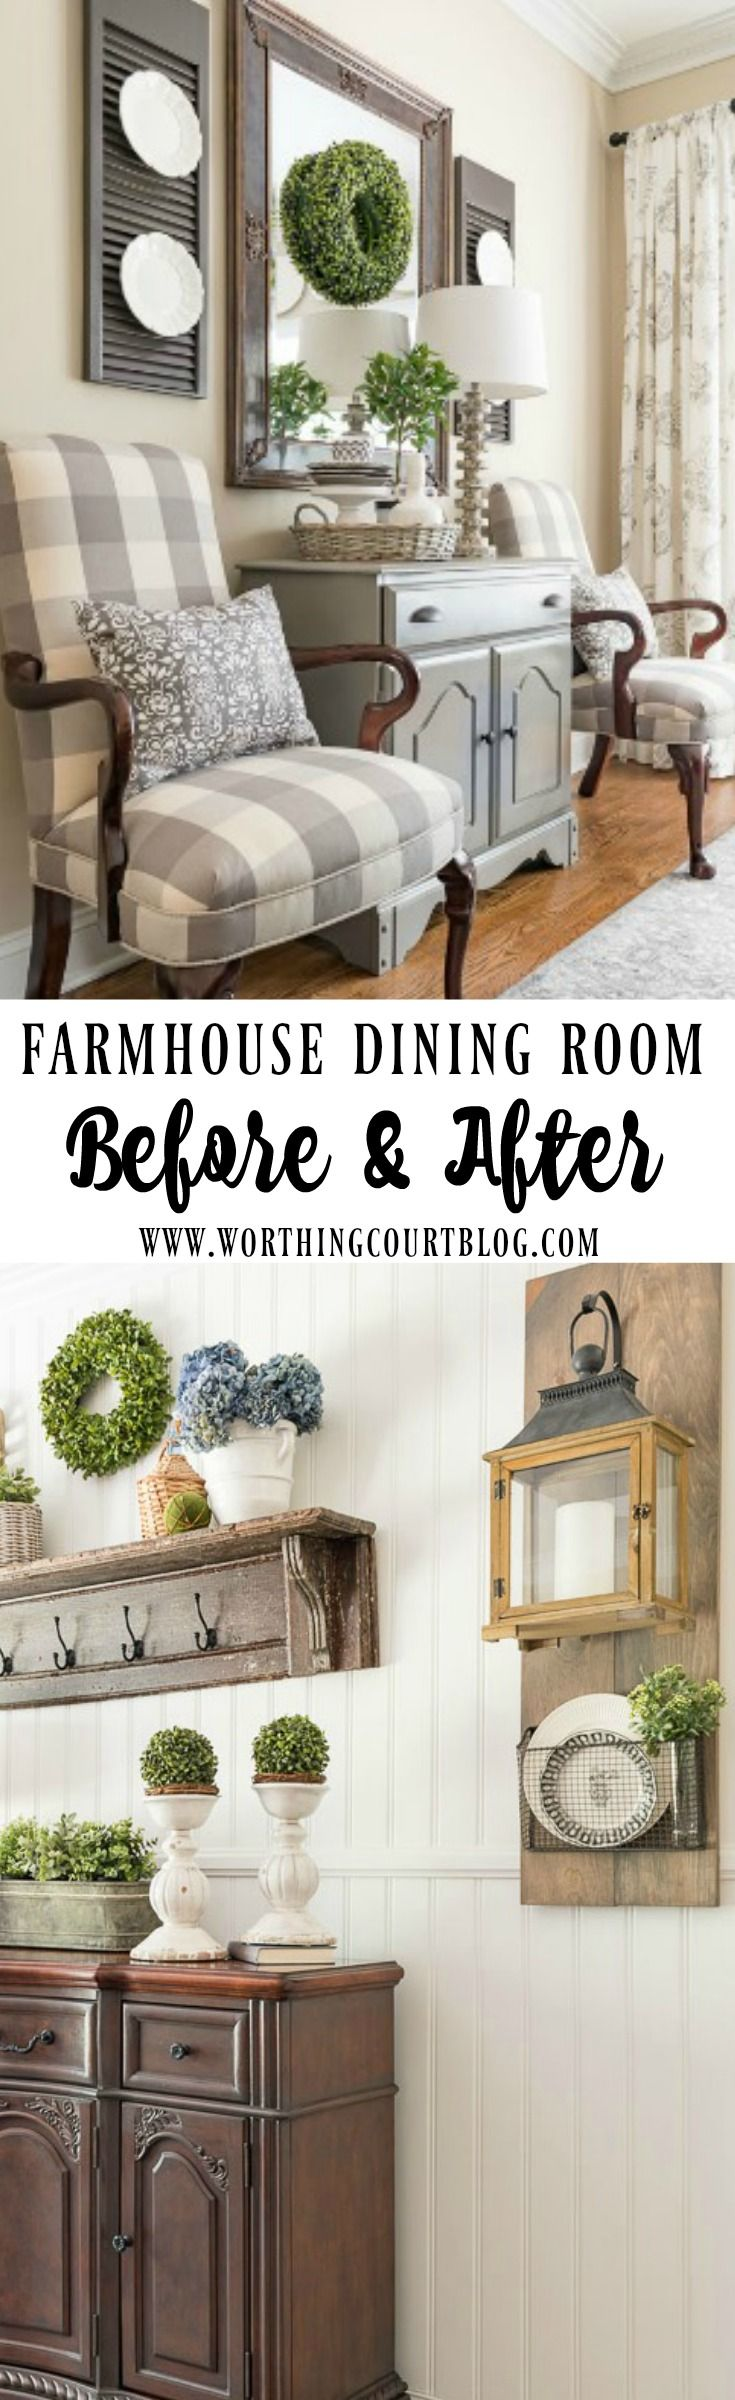 Best 25 farmhouse dining rooms ideas on pinterest for Dining room wall decor ideas